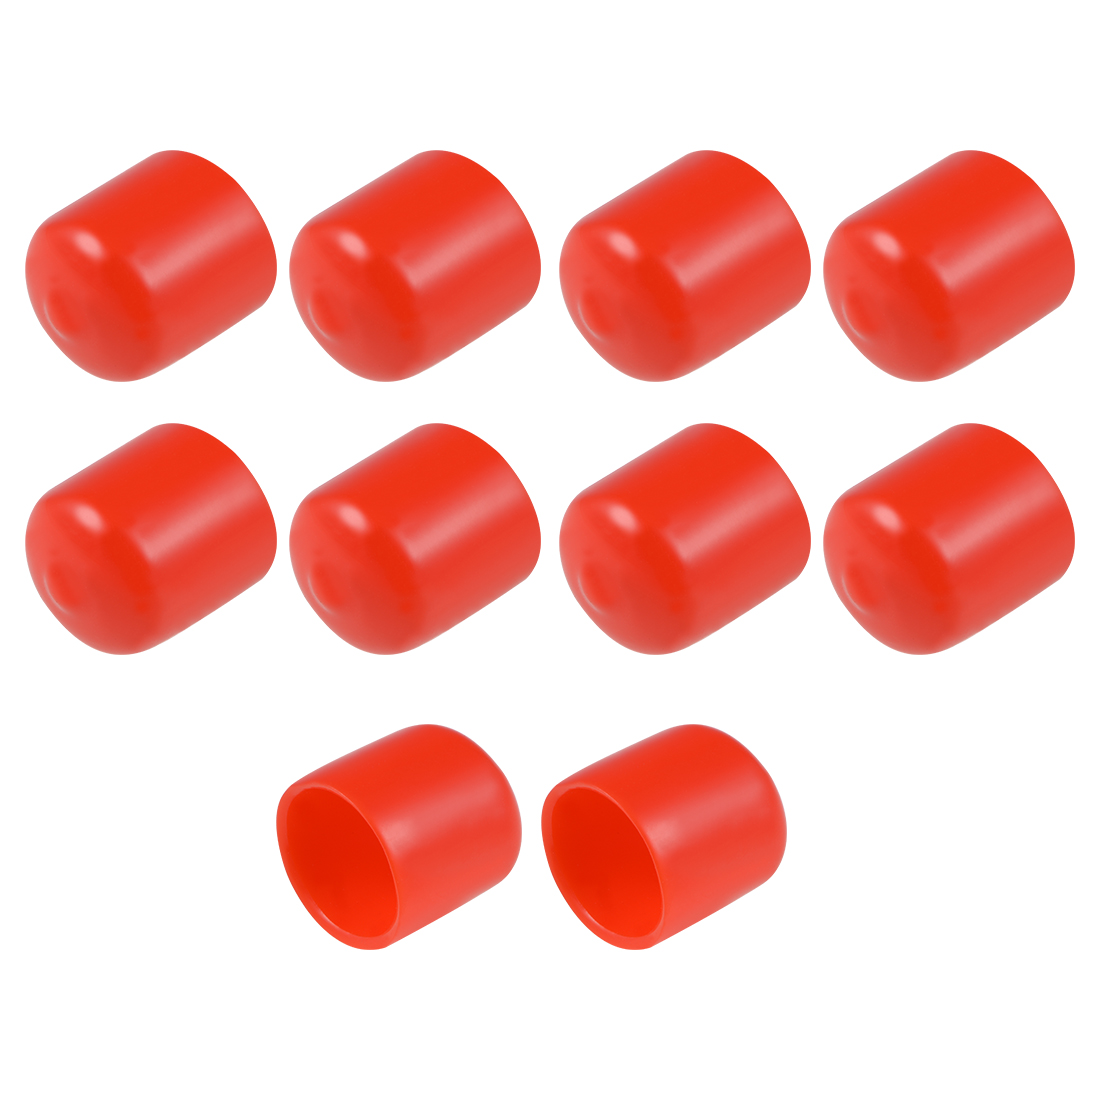 Screw Thread Protectors, 21mm ID 26mm Length Round End Cap Cover Red 10pcs